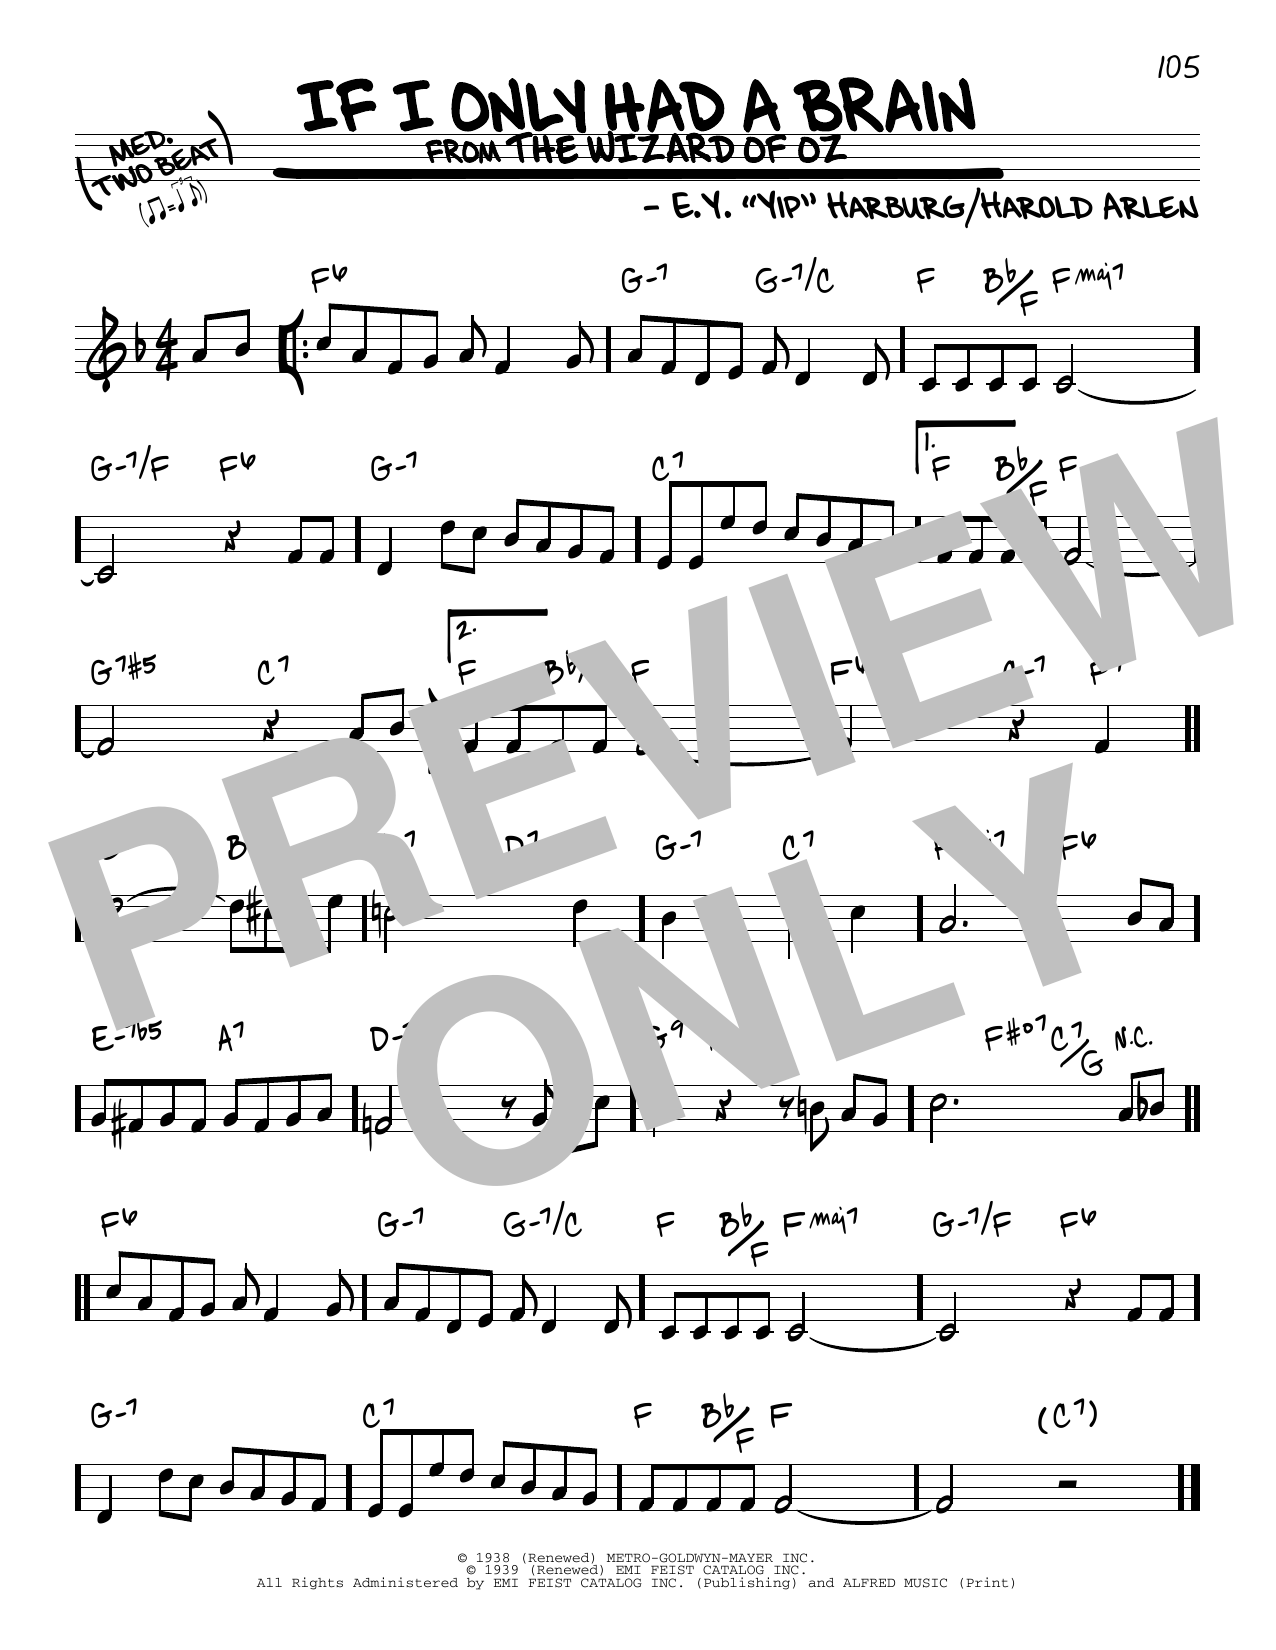 If I Only Had A Brain Sheet Music